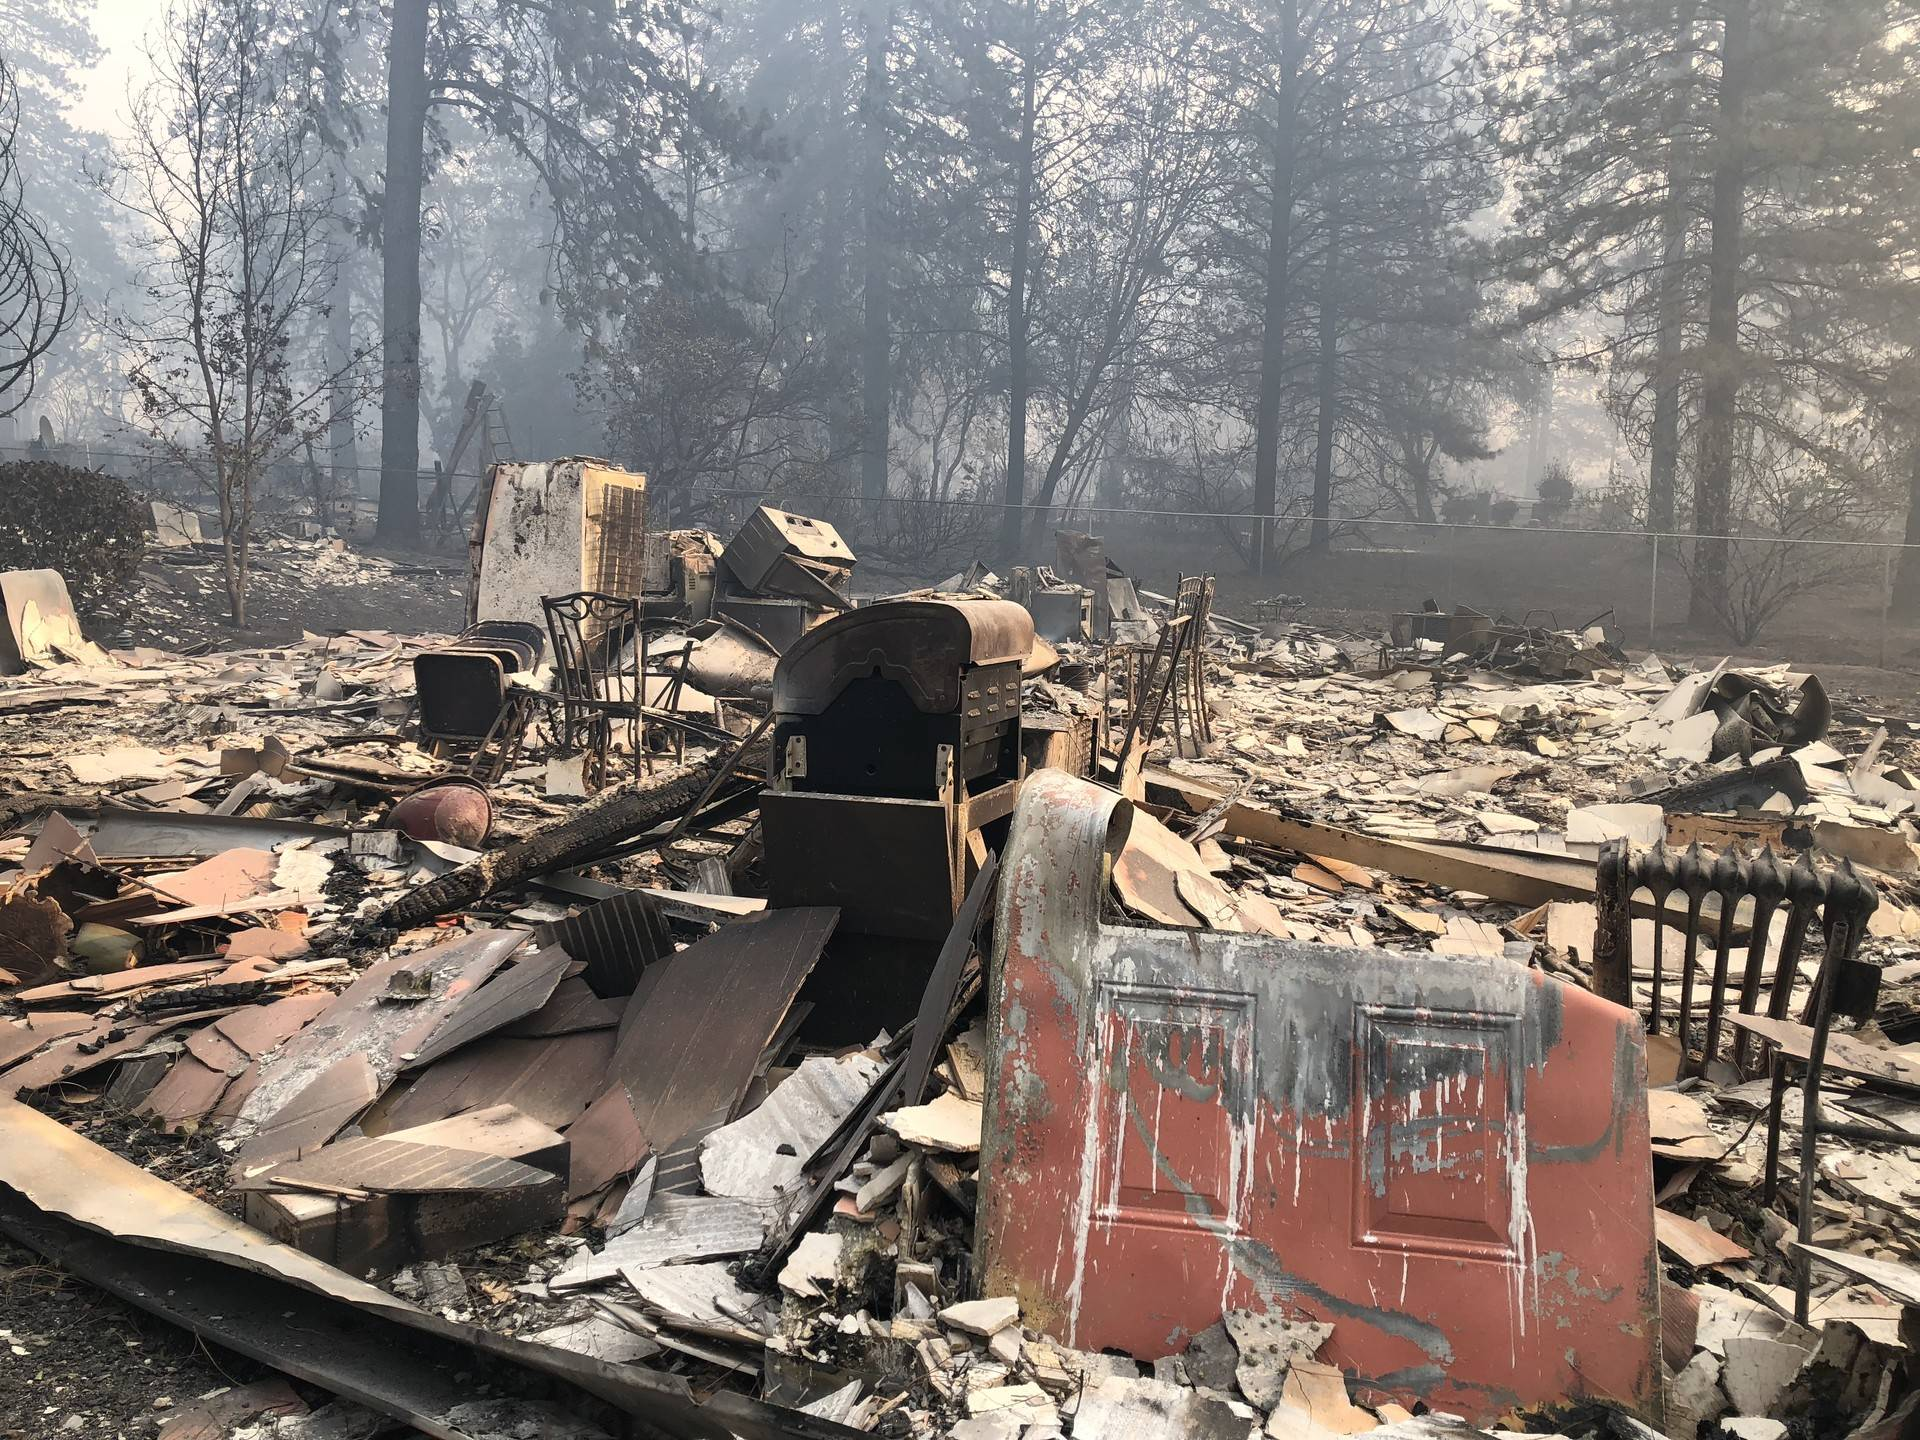 Thousands of buildings, like this apartment building in Paradise, burned to the ground in the Camp Fire. Sonja Hutson/KQED